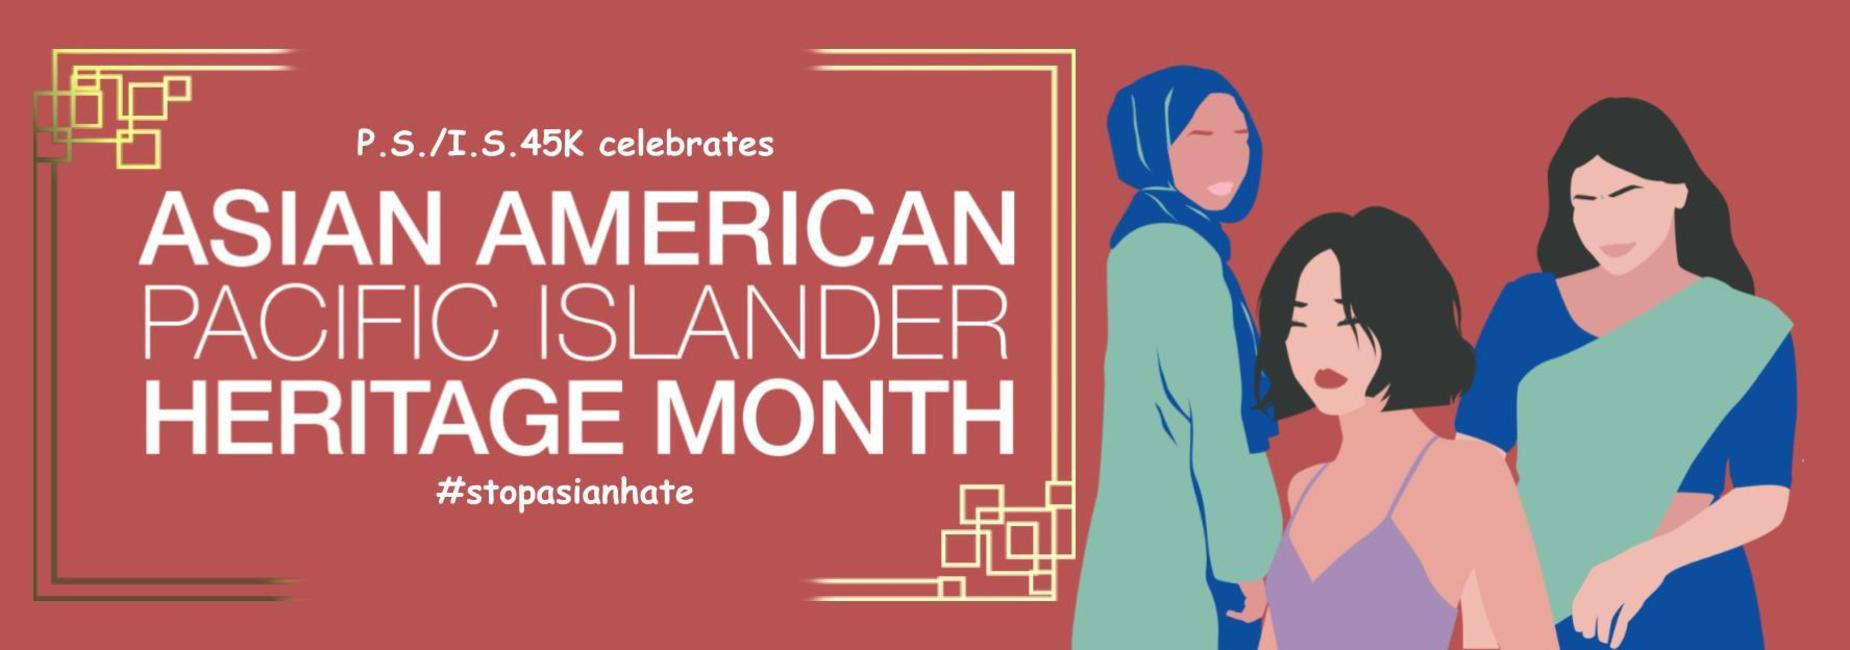 PS/IS 45K celebrates Asian American Pacific Heritage Month 2021